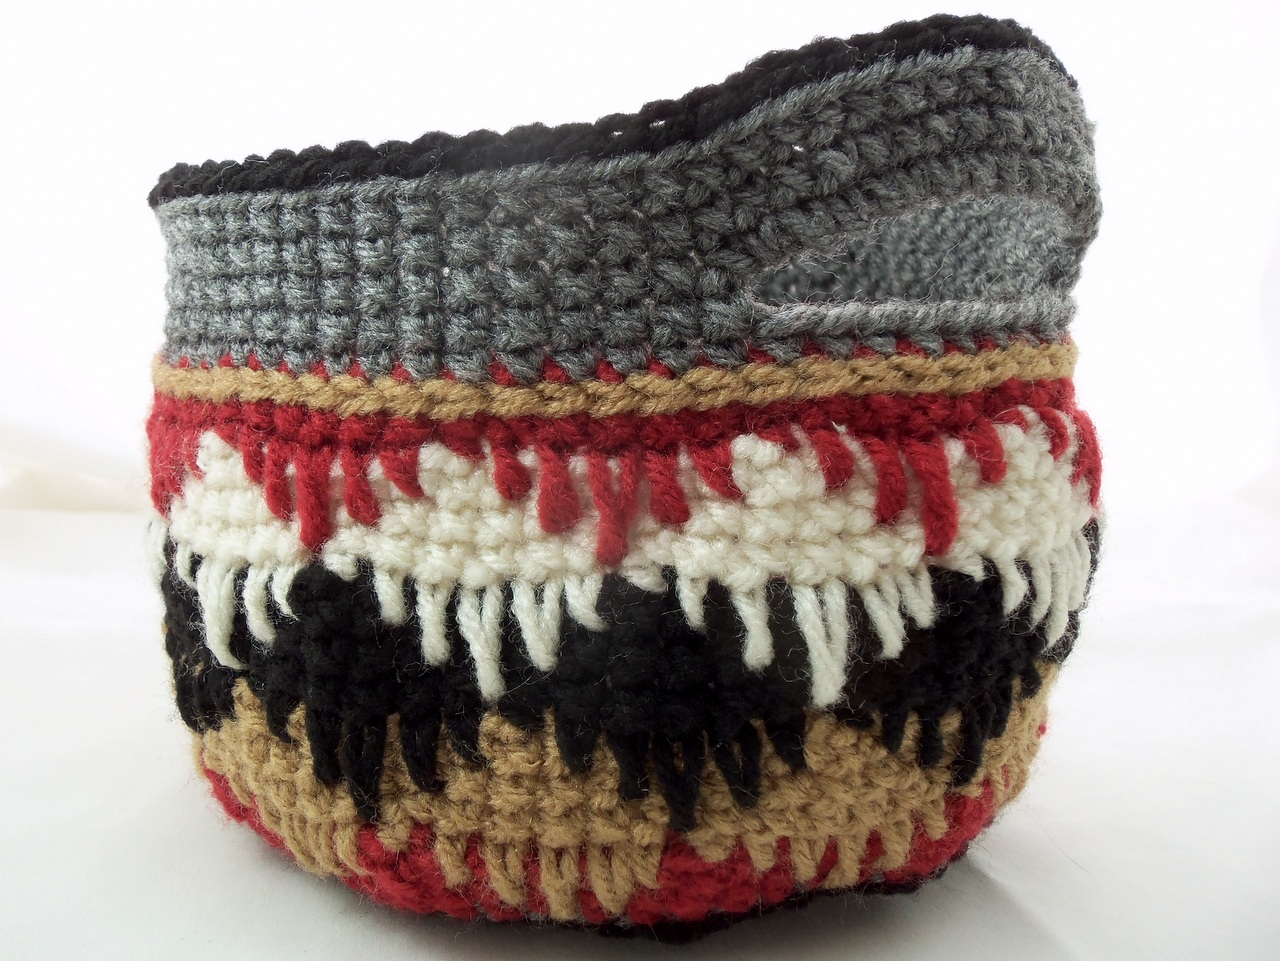 Free Crochet Pattern: Eye Dazzler Basket | Deborah Lee Soltesz